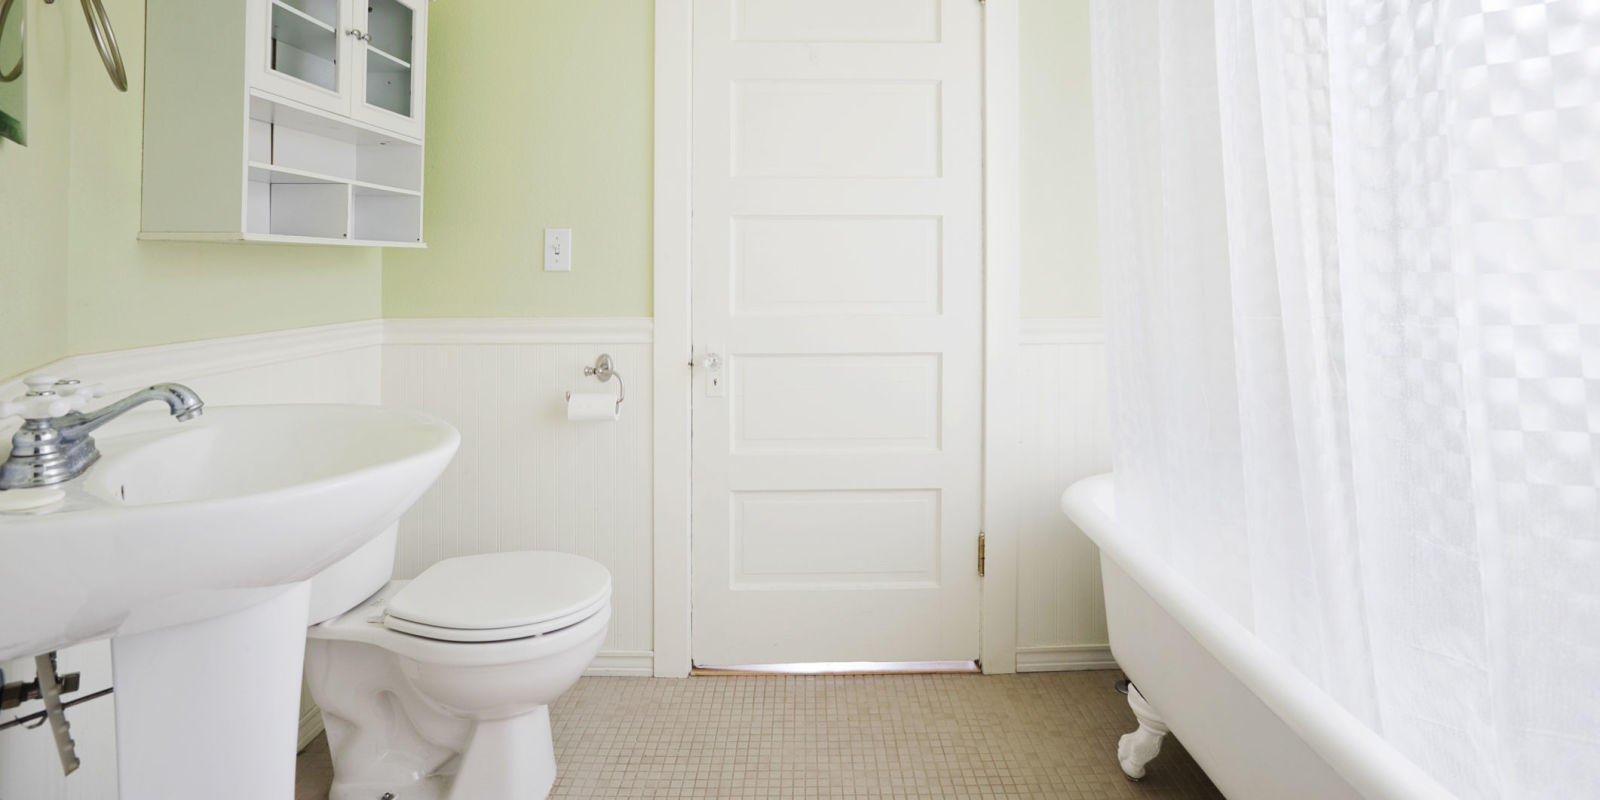 Shine on a dime professional cleaning services - How to professionally clean a bathroom ...